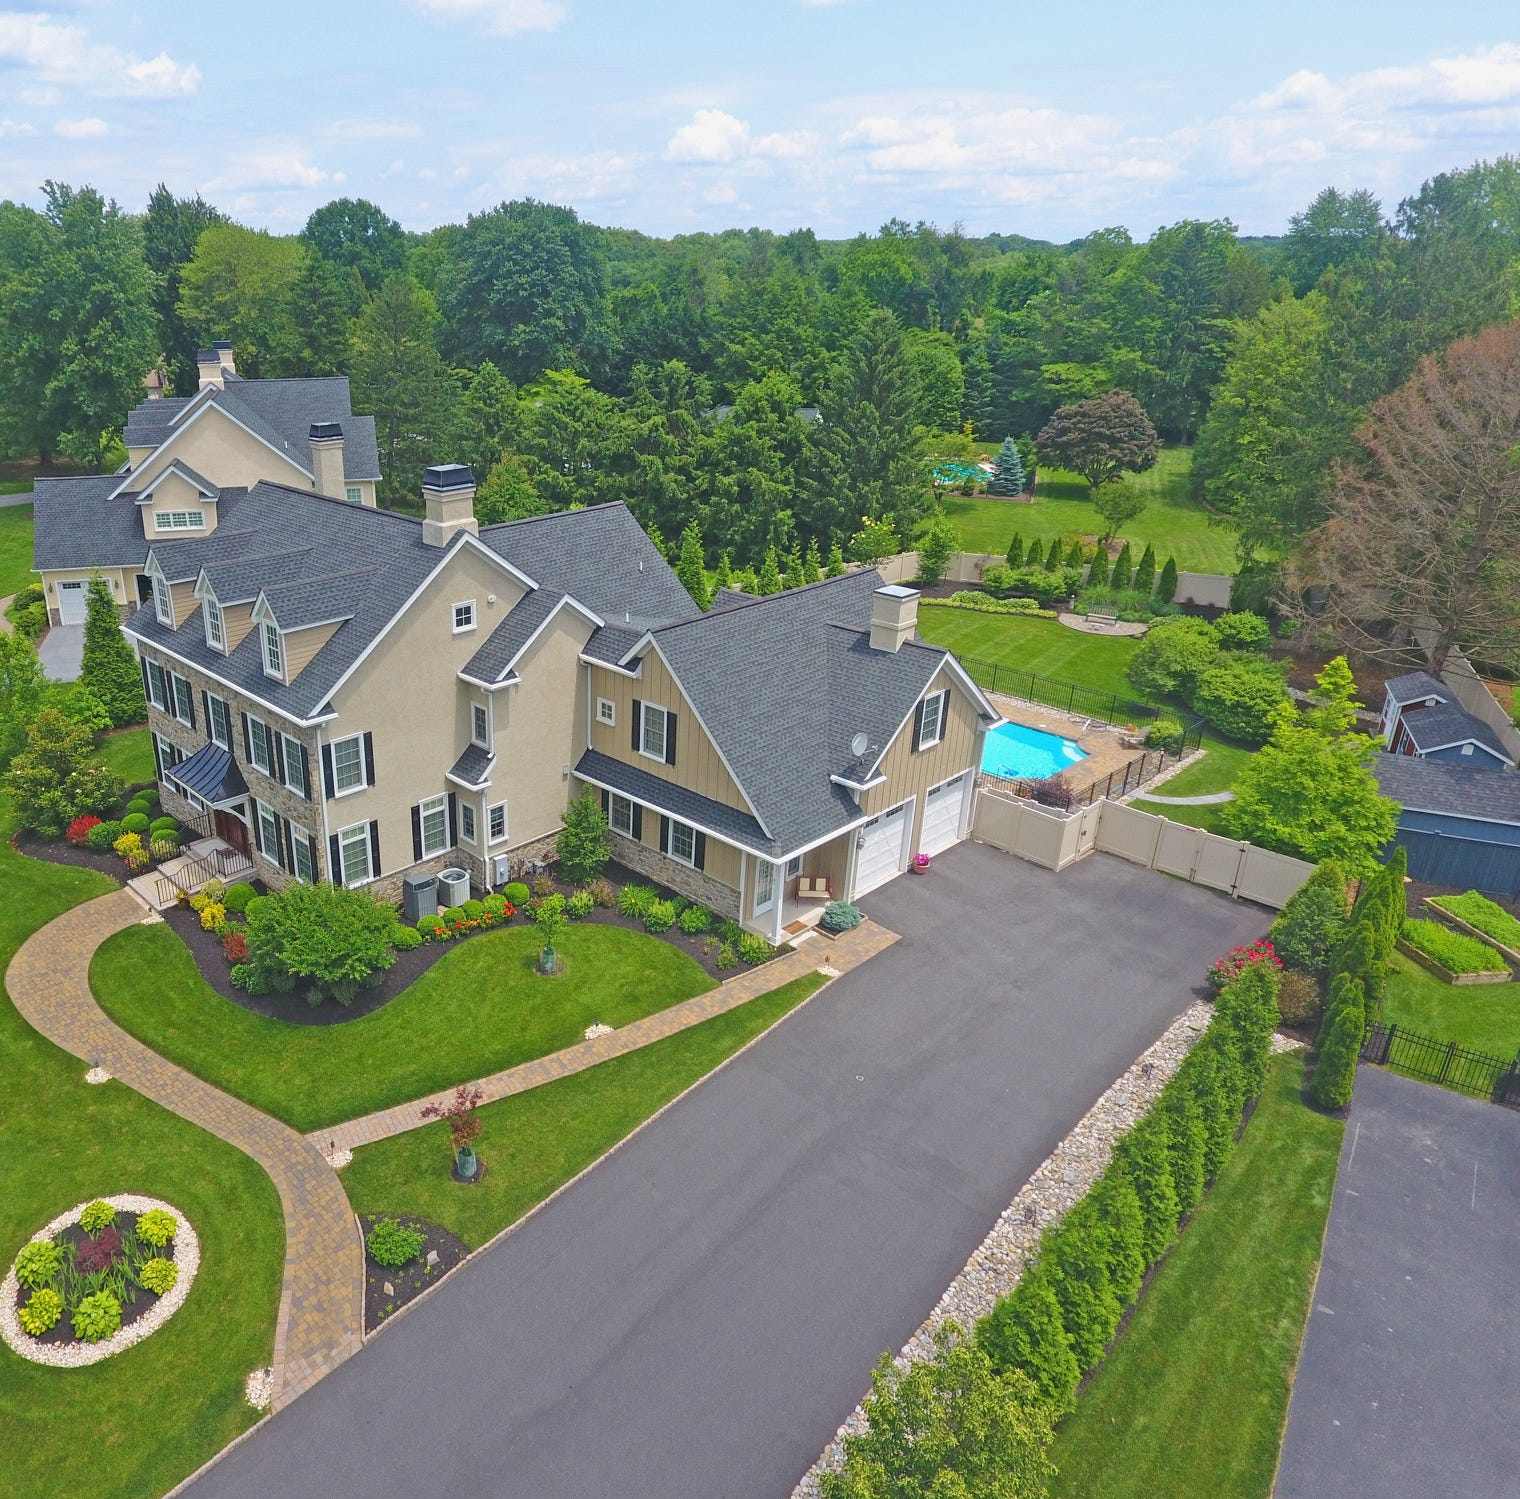 Delaware Spaces: $1.6 million custom-built Greenville home on Courtney Road has pool, elevator